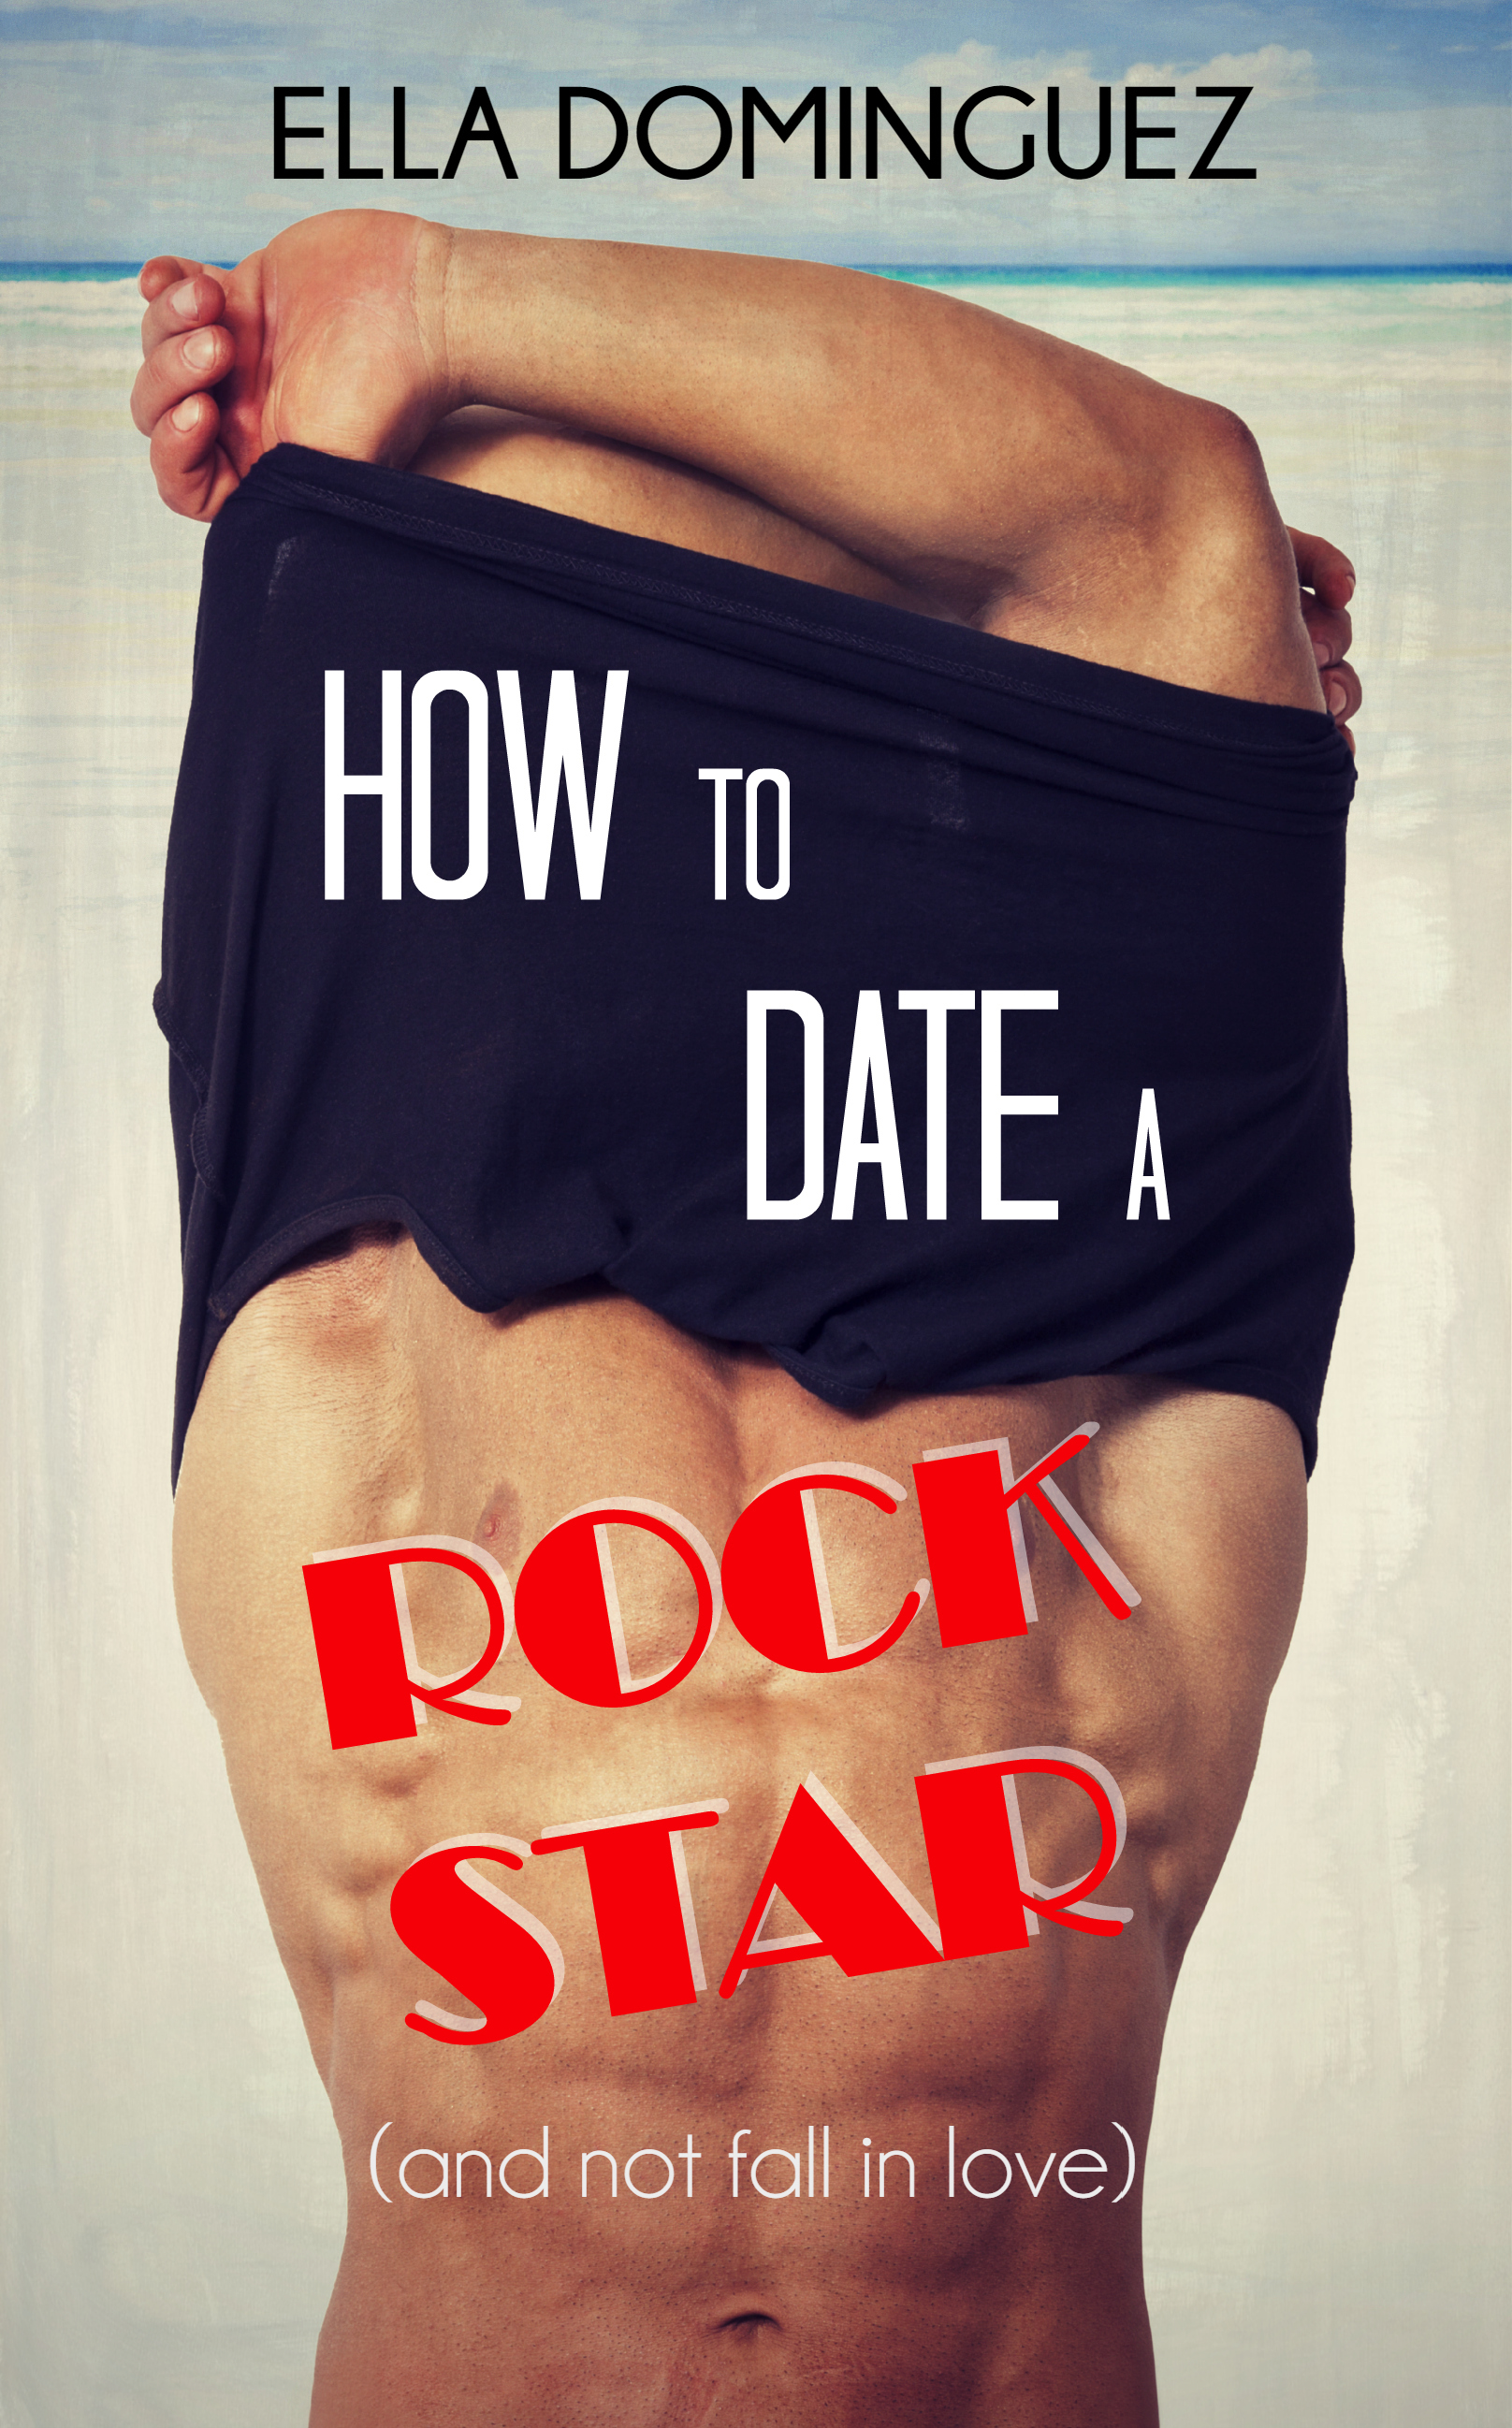 How to Date a Rock Star (and not fall in love)  by  Ella Dominguez